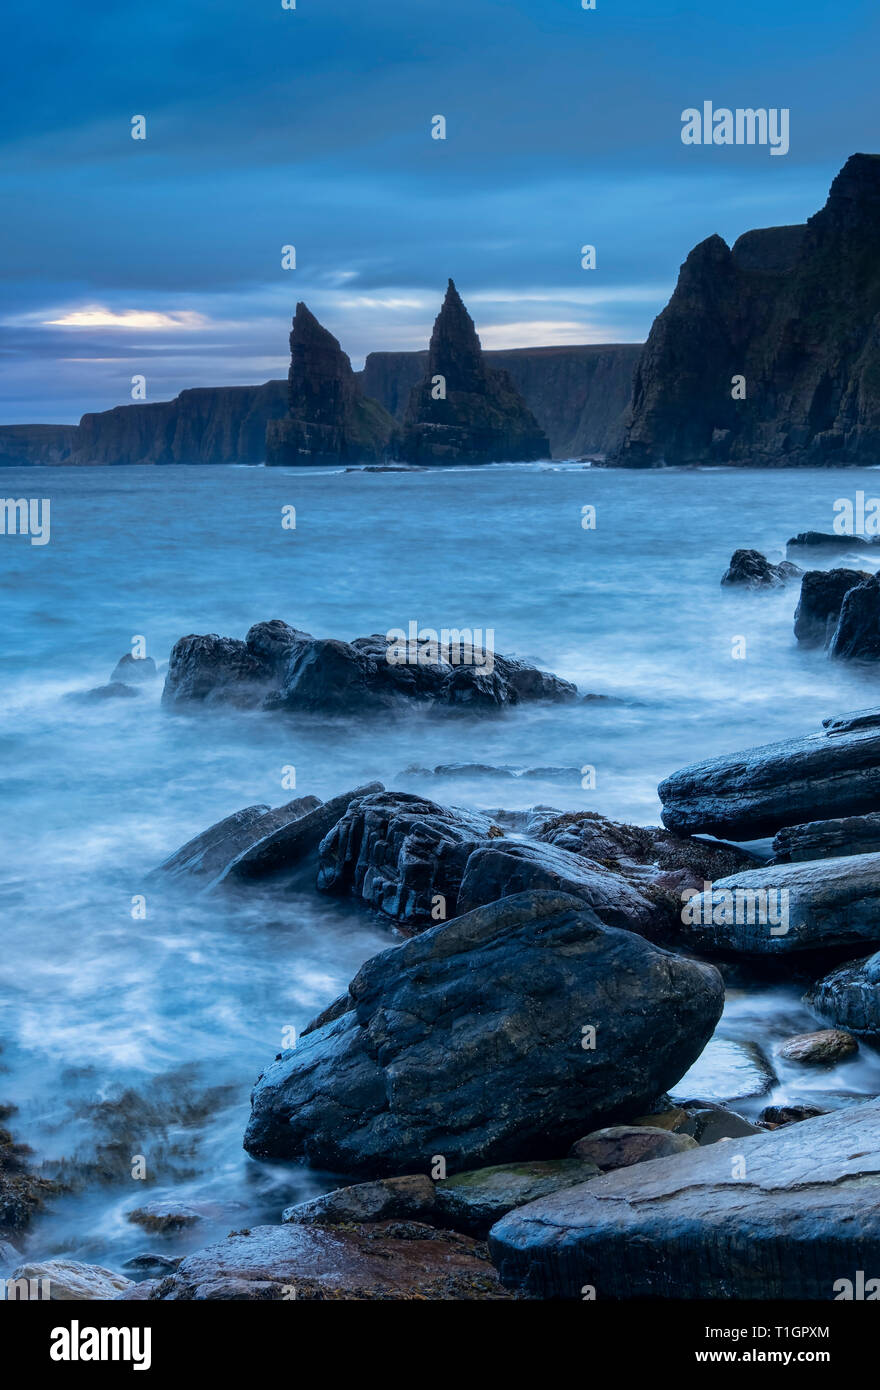 Duncansby Head and Sea Stacks at dawn, Caithness, Scottish Highlands, Scotland, UK - Stock Image